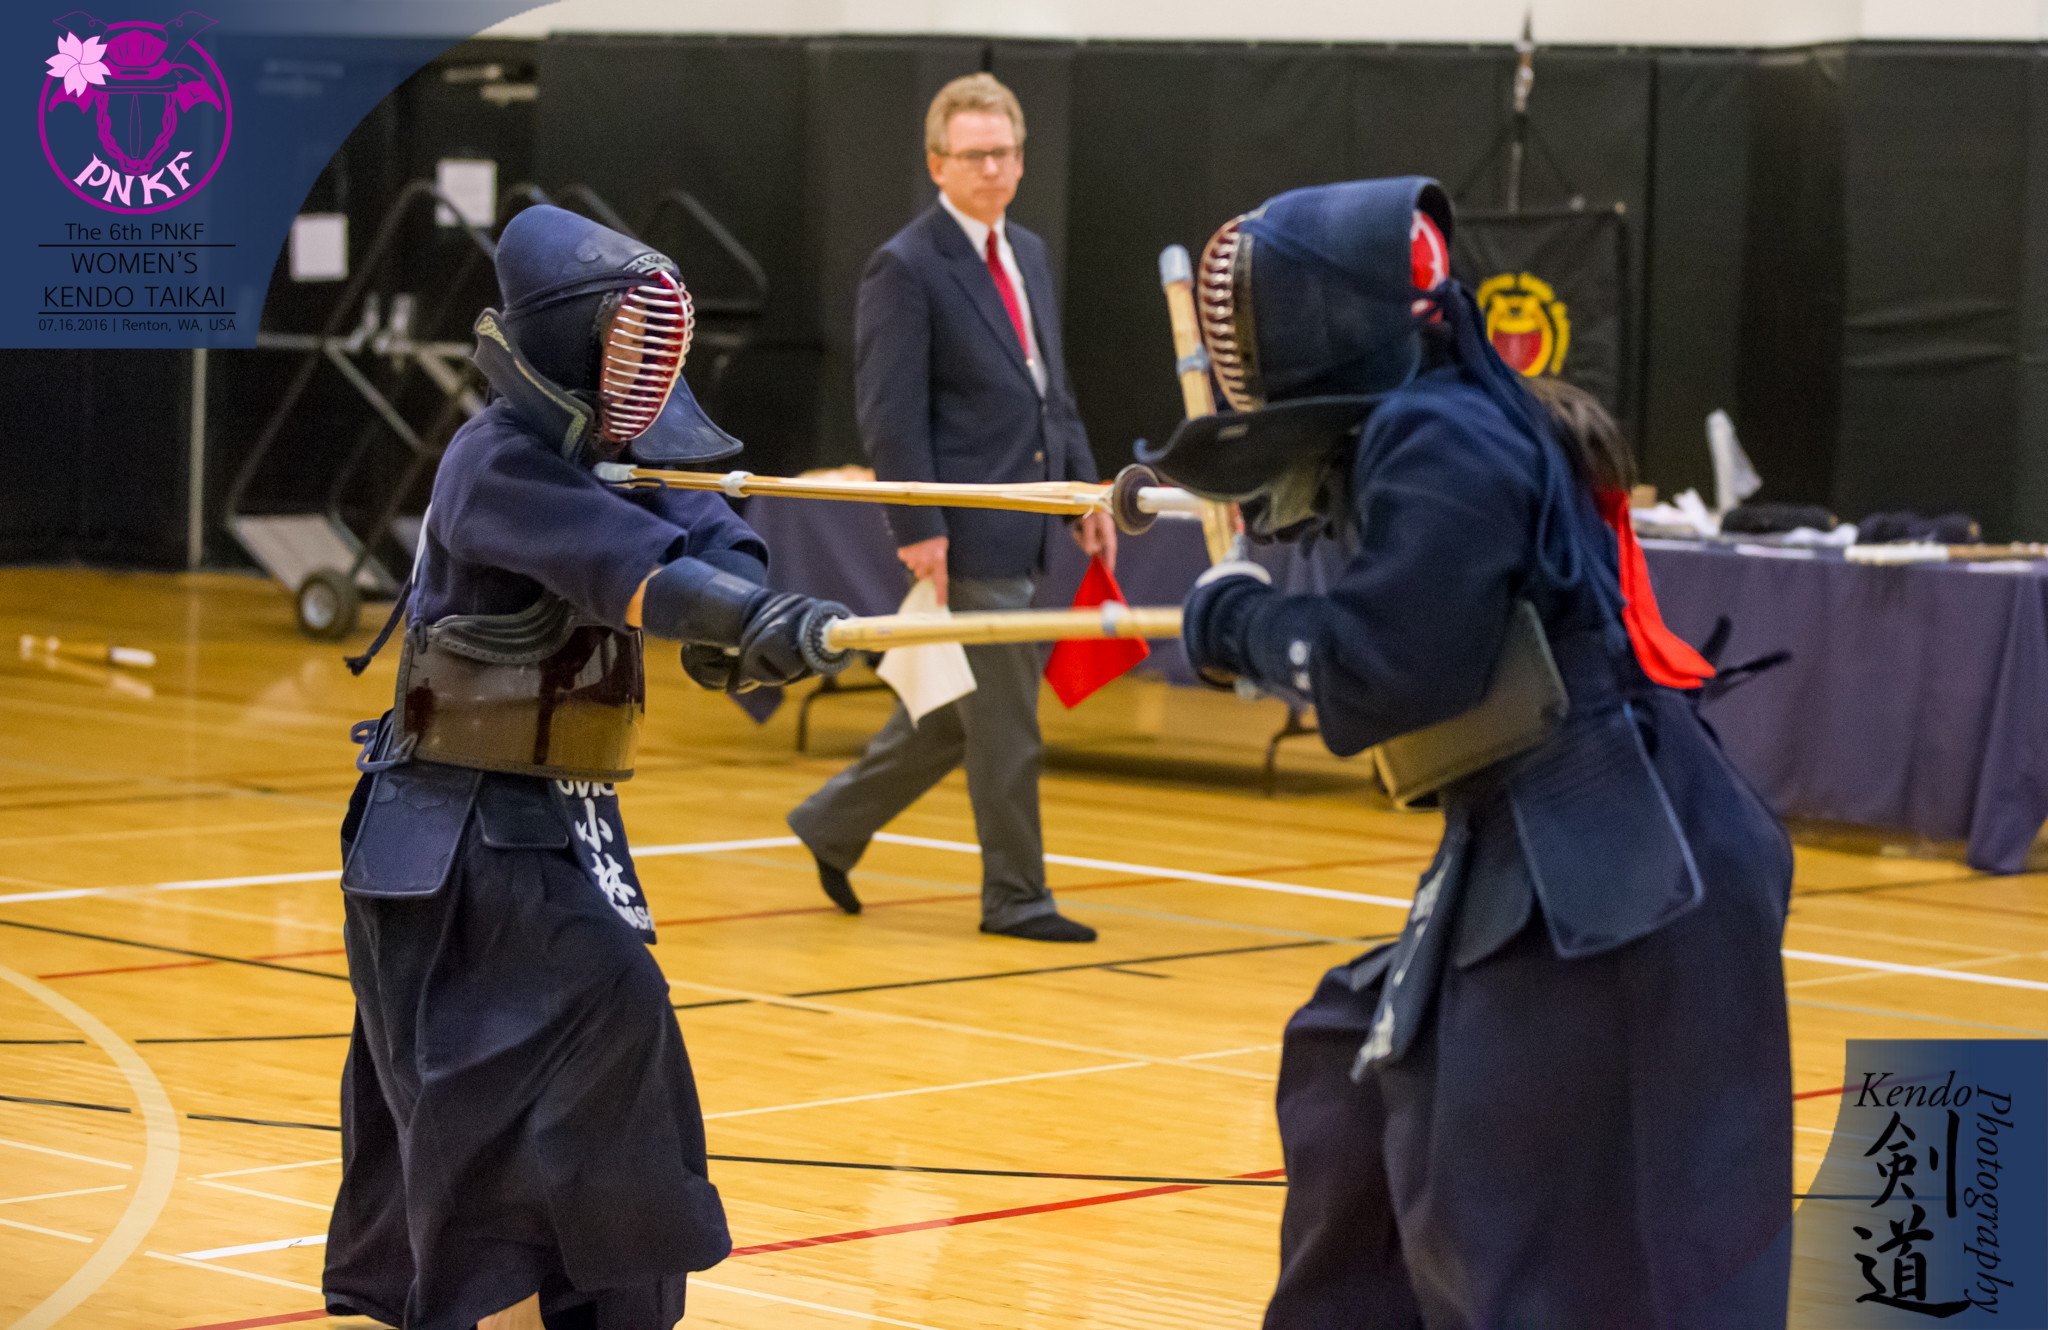 In the tournament there were a few people doing jodan and nito. The individual's champion, Sano, used jodan in most of her matches.  Photo by event photographer Kendo Photography (Seattle).